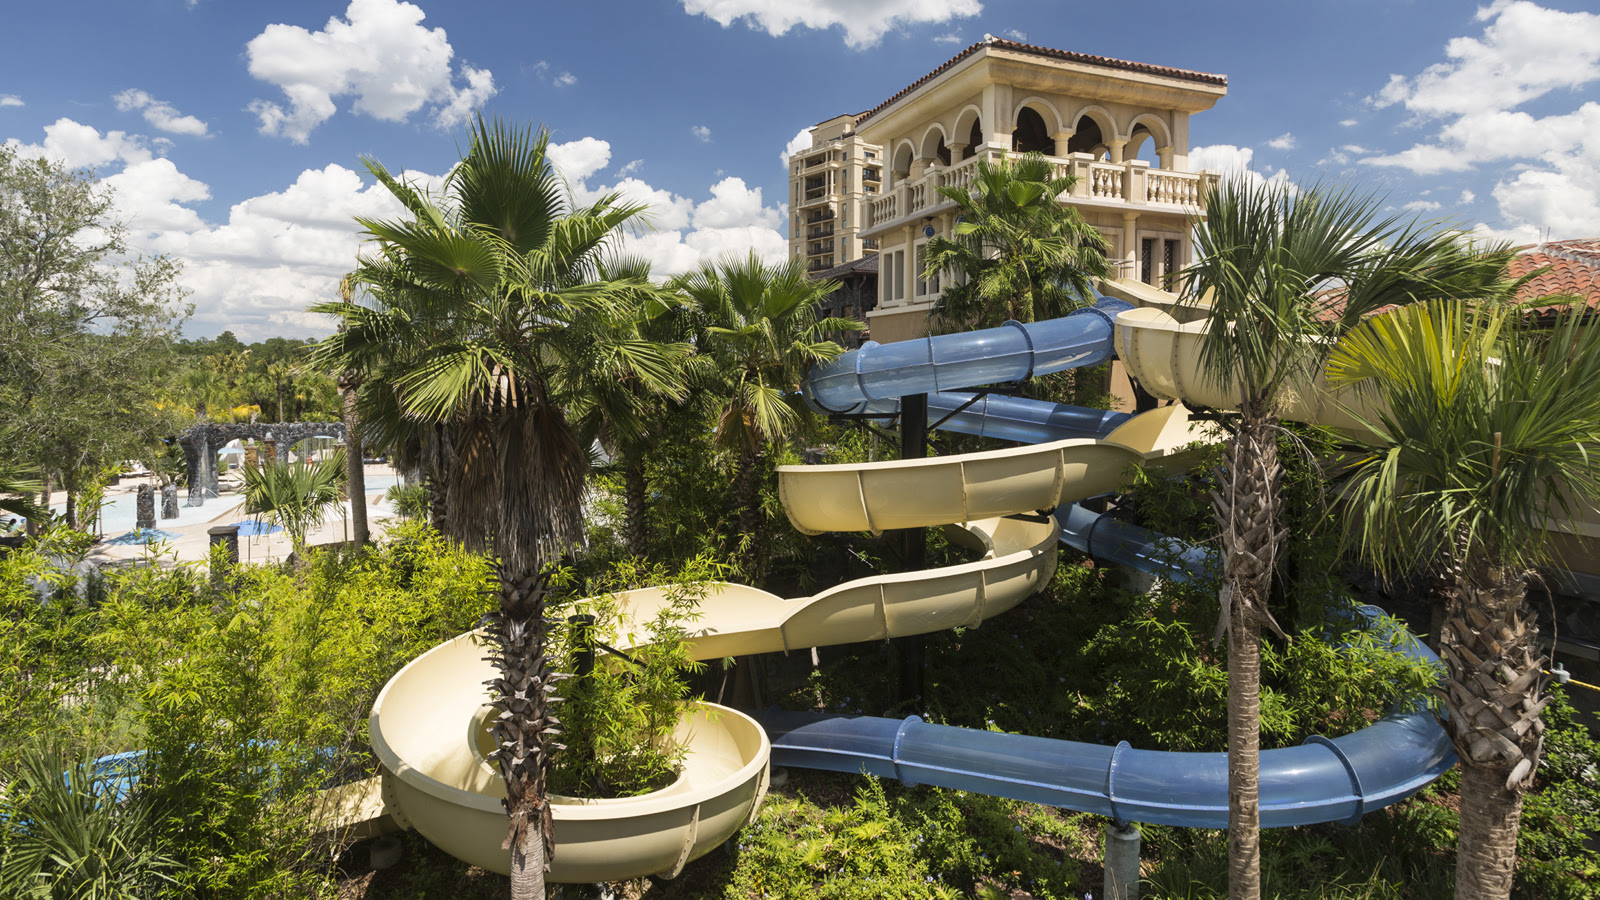 Top Florida Family Hotels by Four Seasons! | Family ...